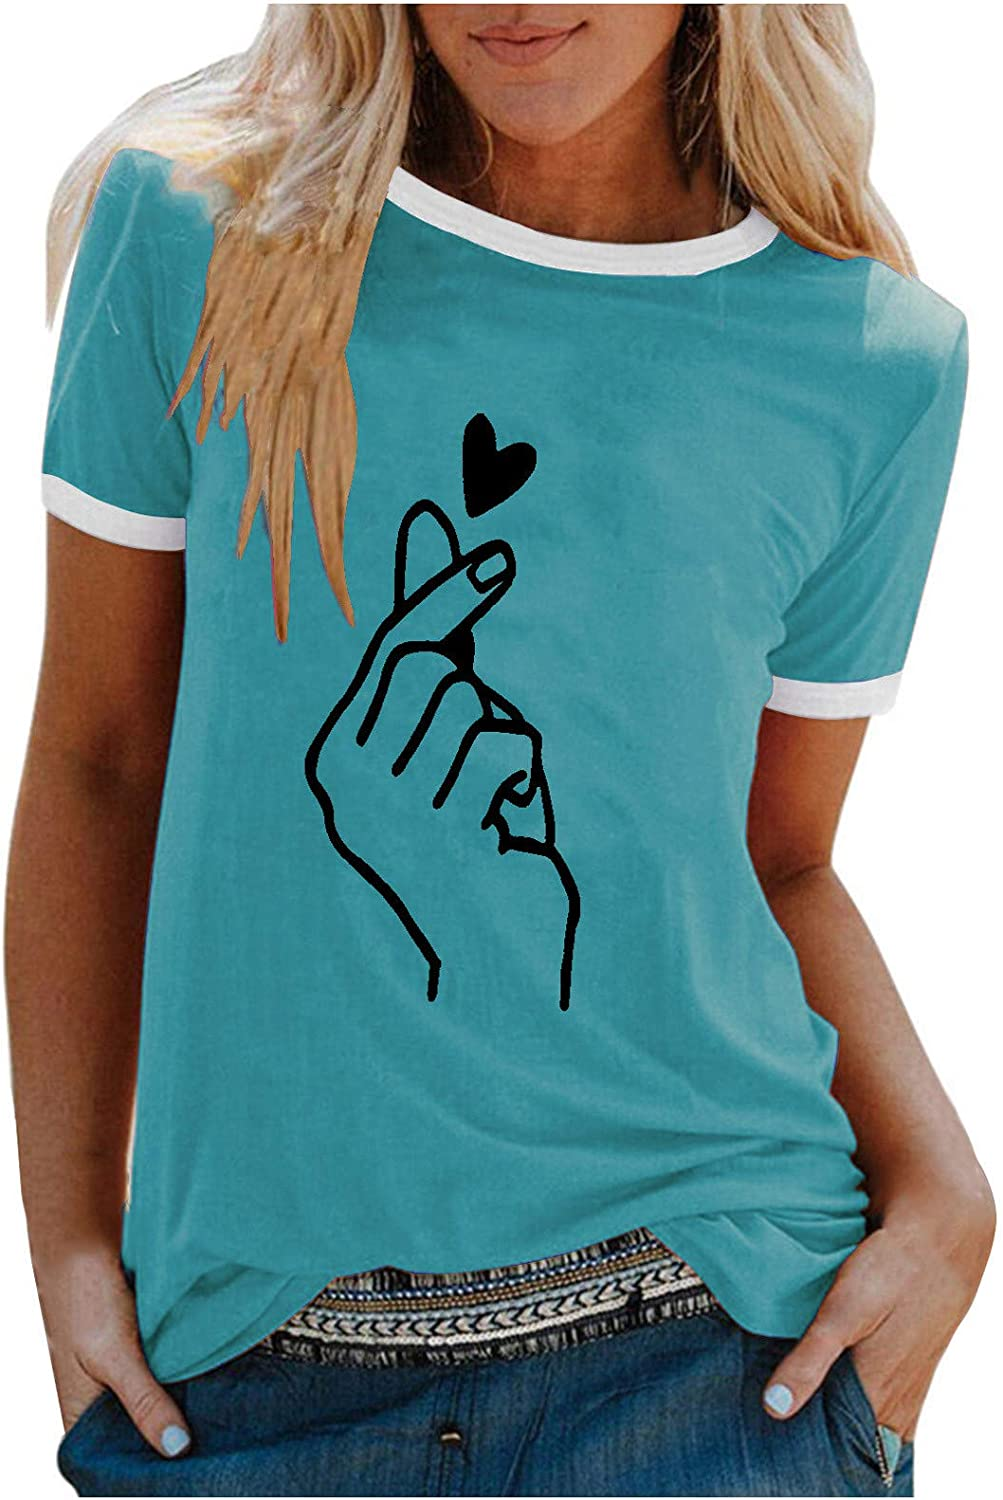 FABIURT T Shirts for Women Fashion Printed Round Neck Graphic Tee Shirt Summer Casual Loose Pullover Blouse Tunic Tops